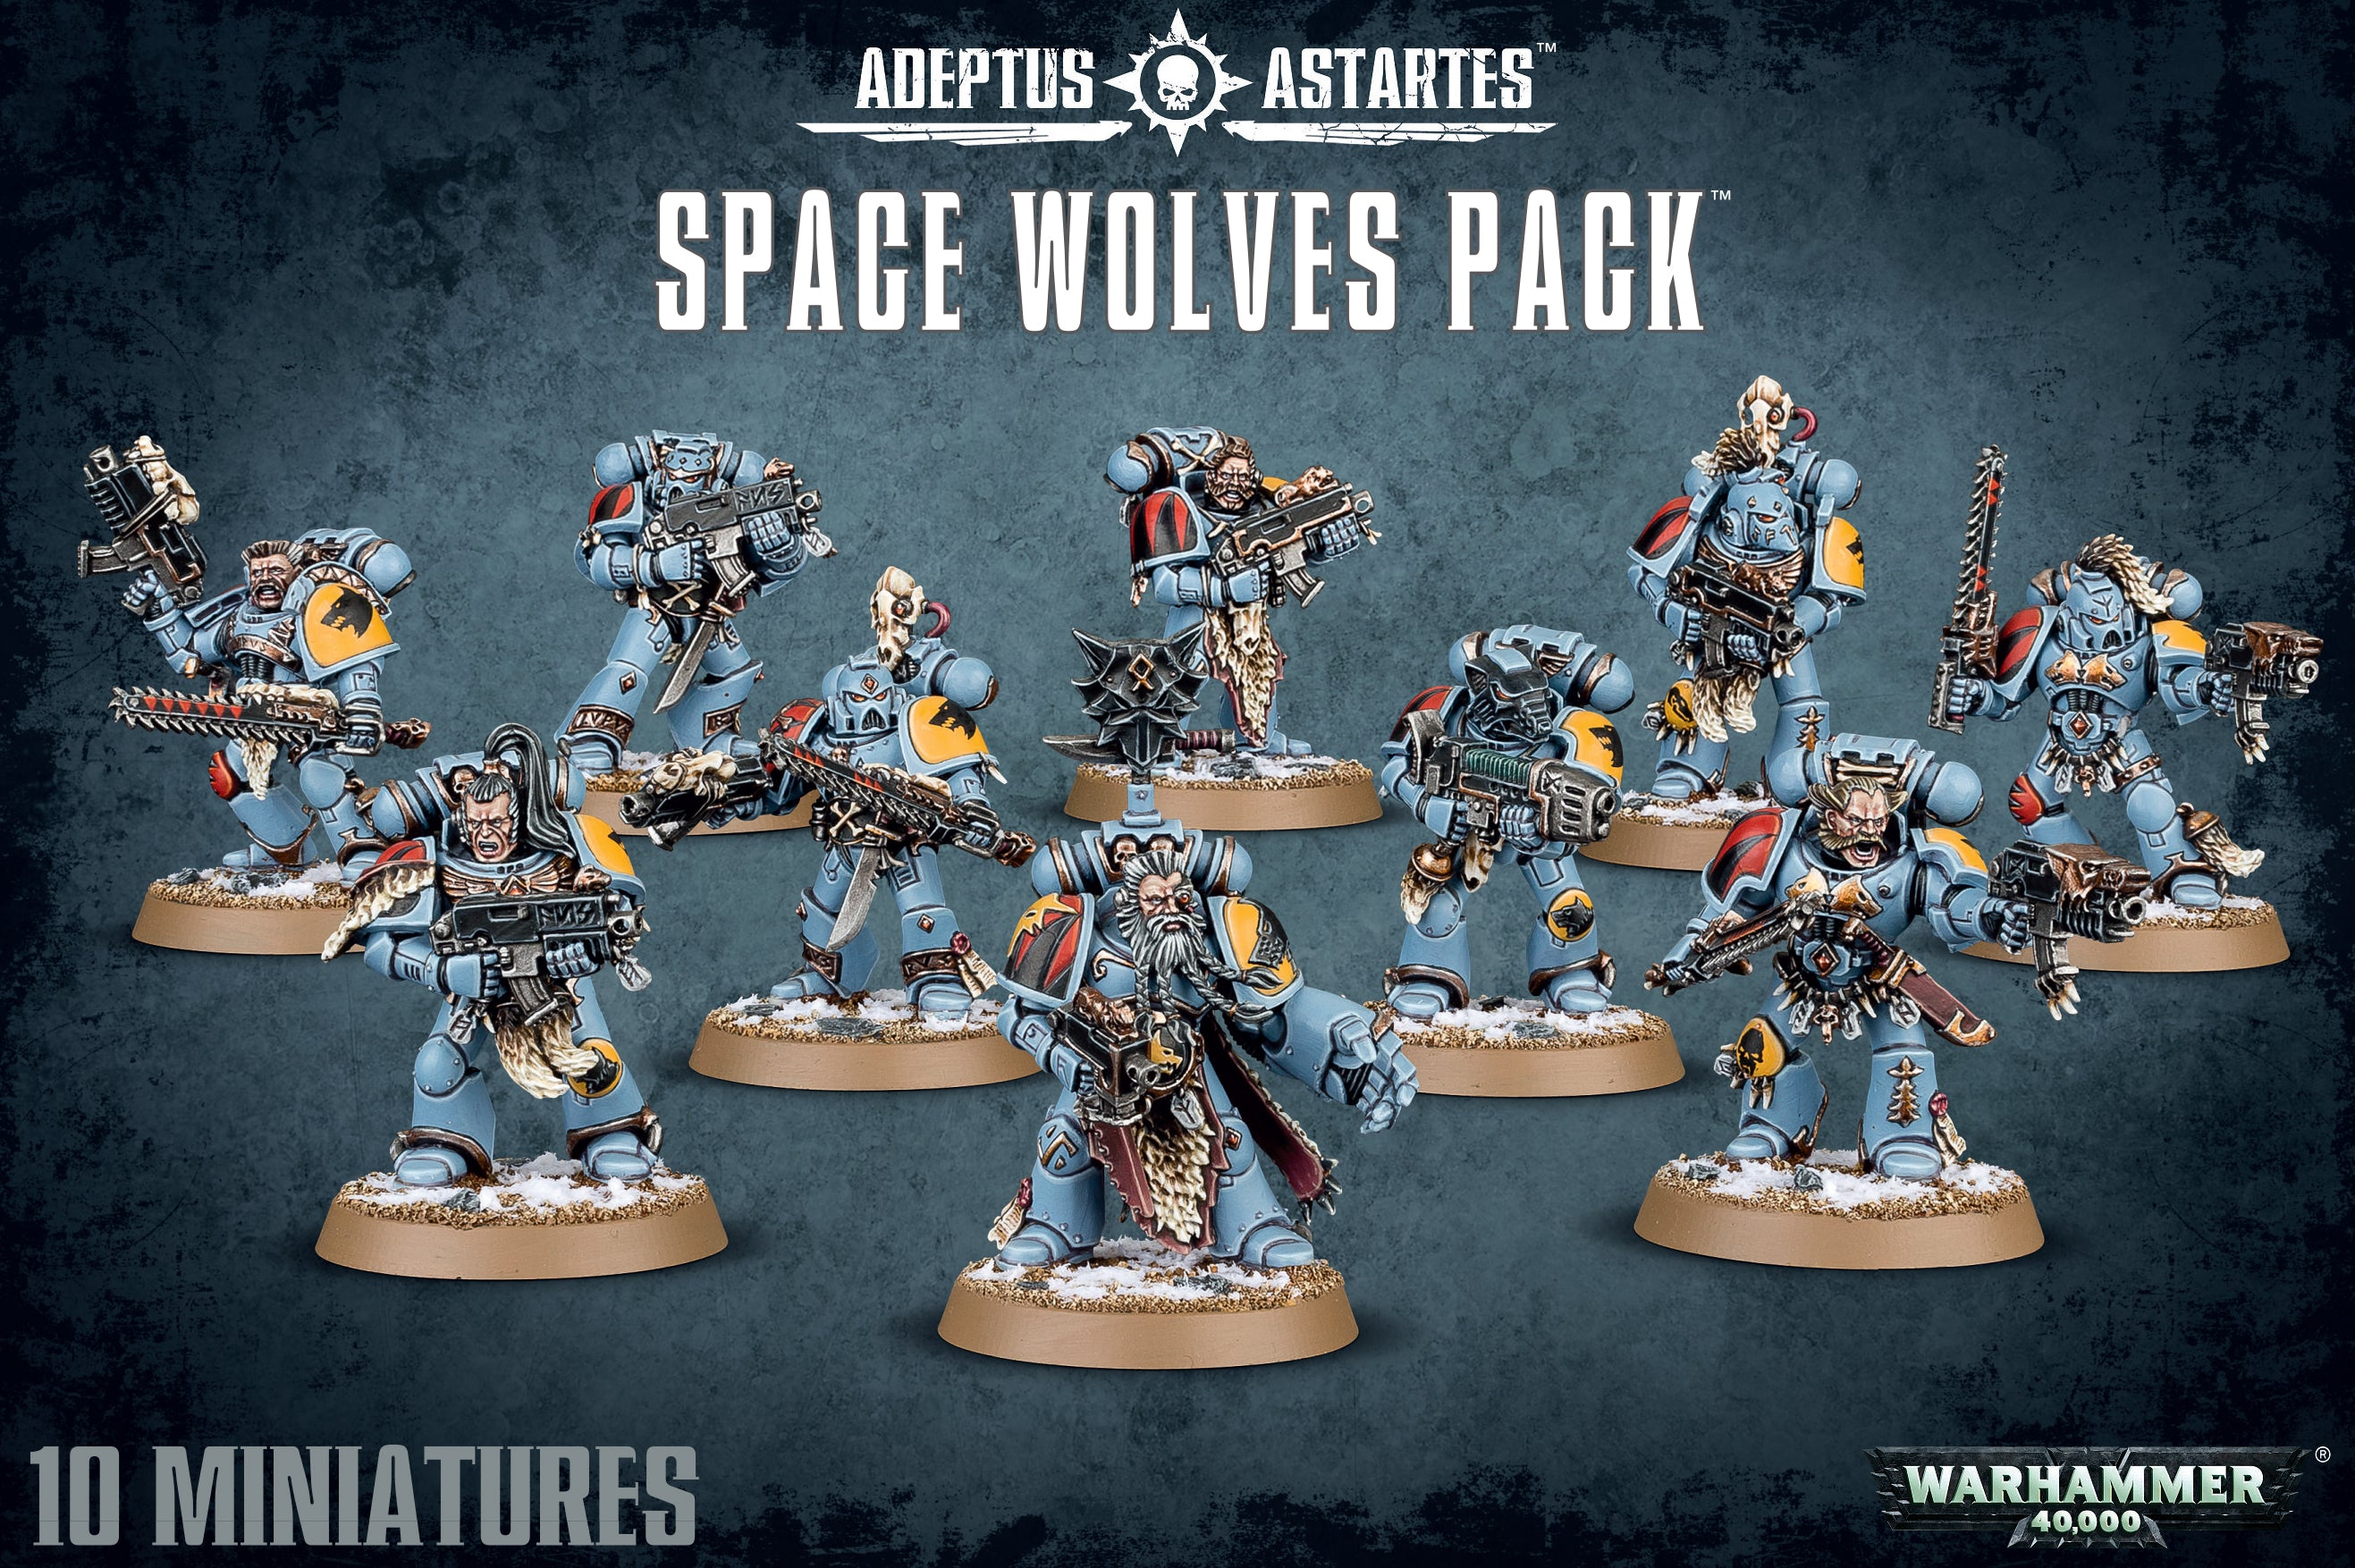 Space Wolves Pack | Mythicos